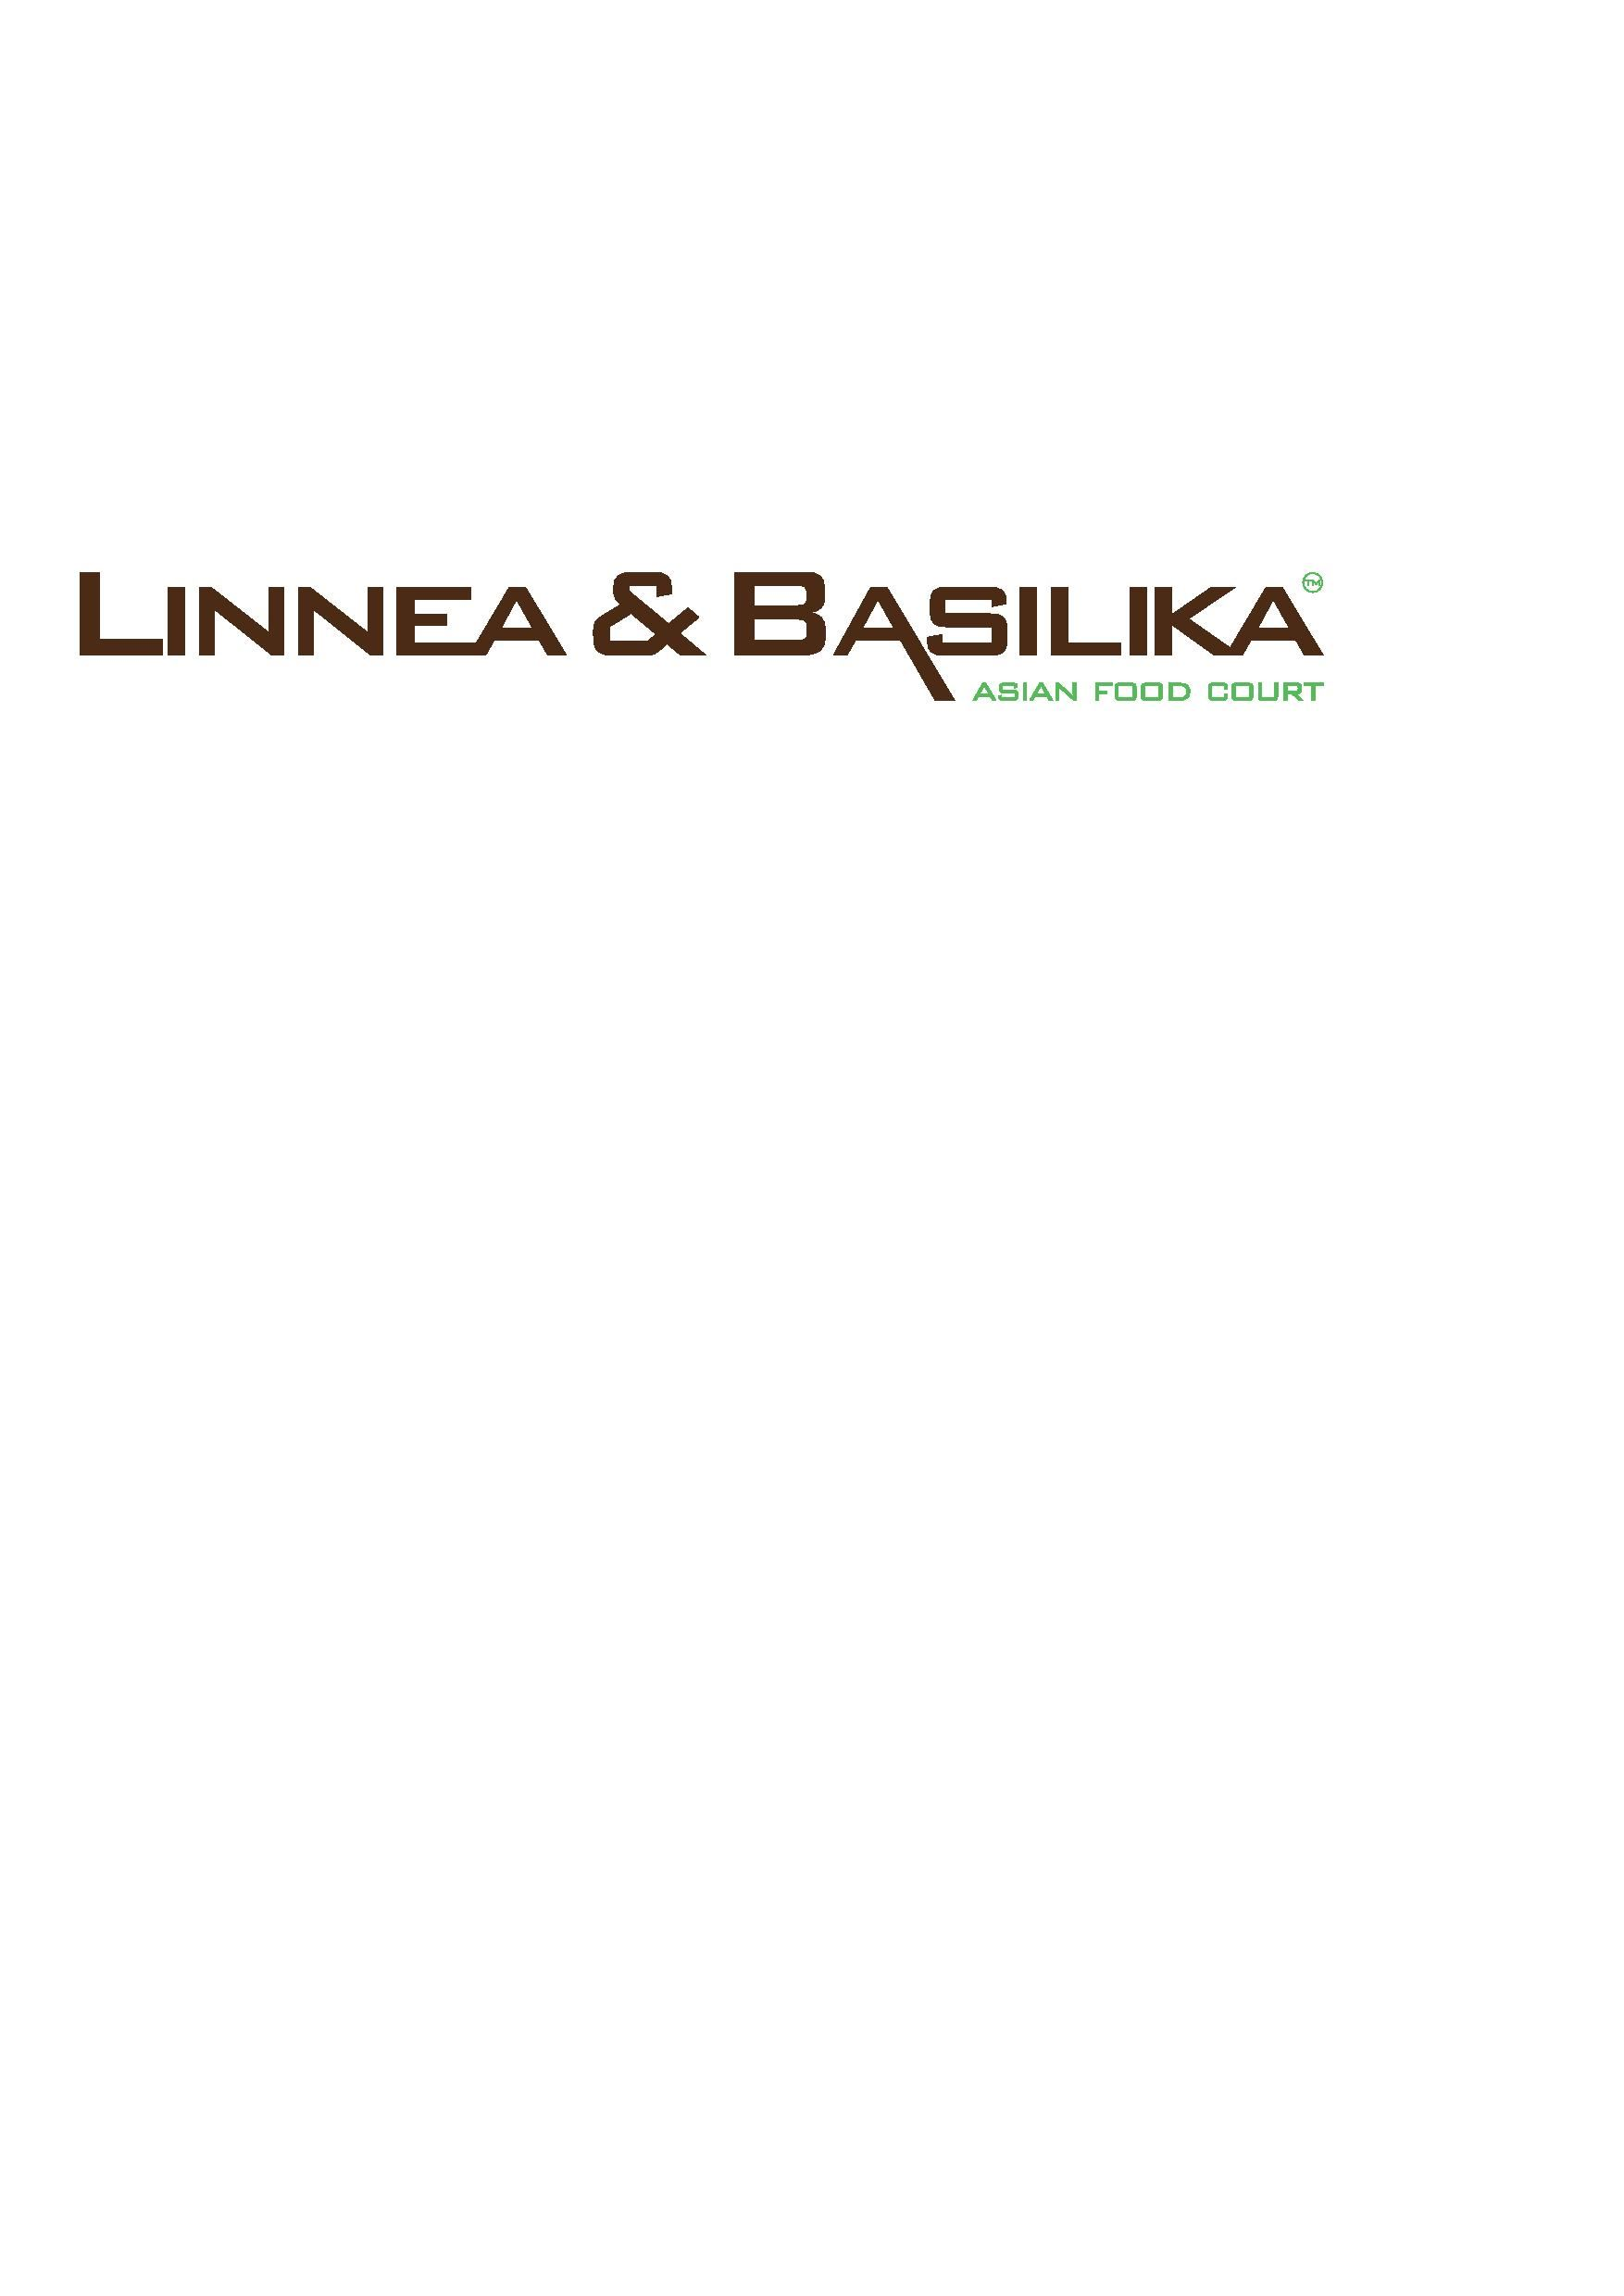 Linnea & Basilika Asian Food